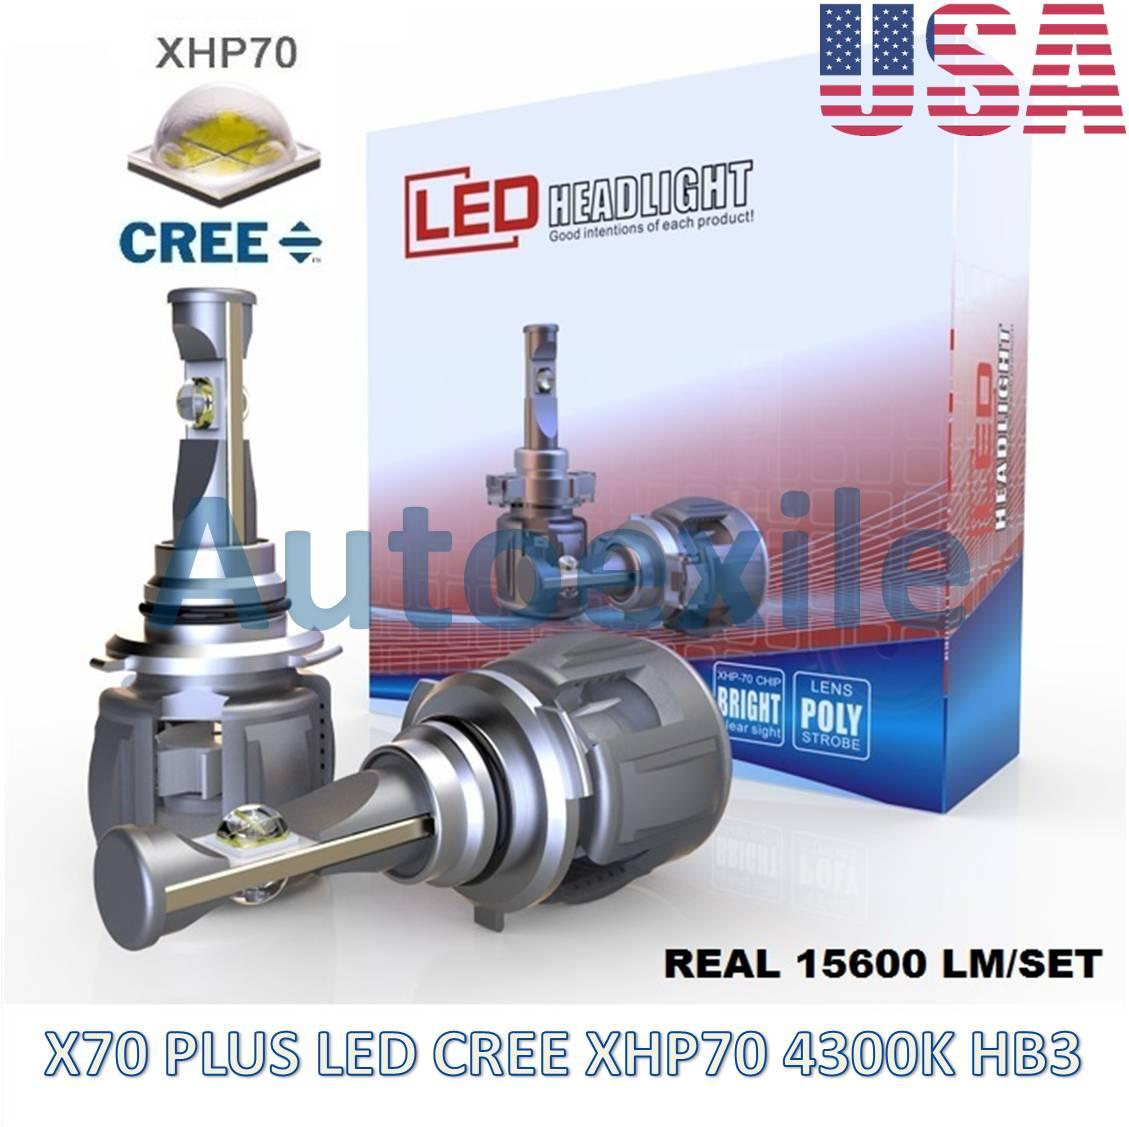 X70 Plus LED HB3 9005 60W 15600LM CREE XHP70 4300K Lampu Mobil XHP 70 Kuning BRV CRV Innova Reborn Fortuner Rush New Pajero Terios XI New Civic Celica